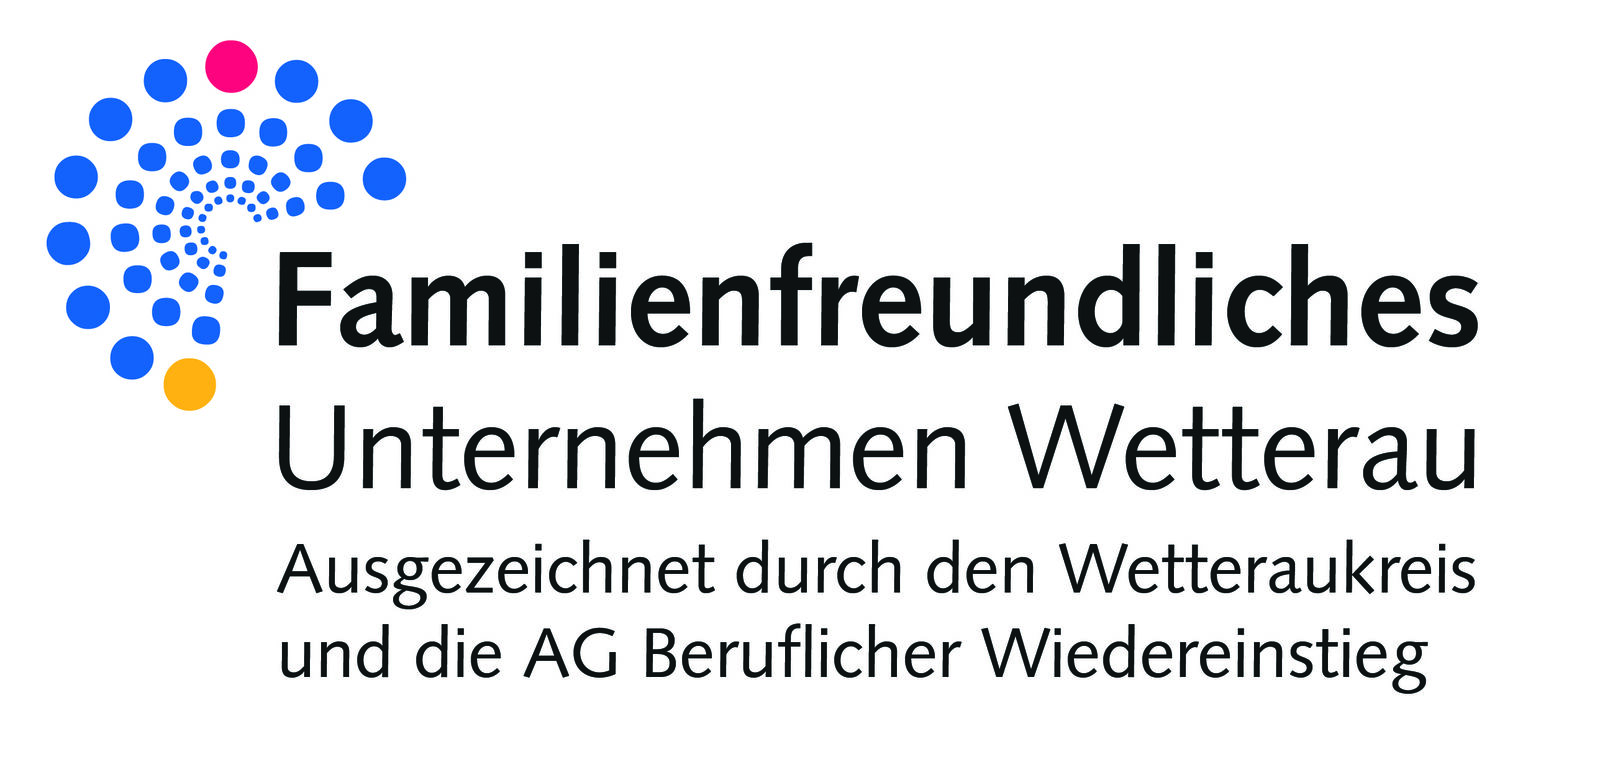 Werkstudent Human Resources (m/w/d) - Job Bad Vilbel, Homeoffice - Karriere bei Brother